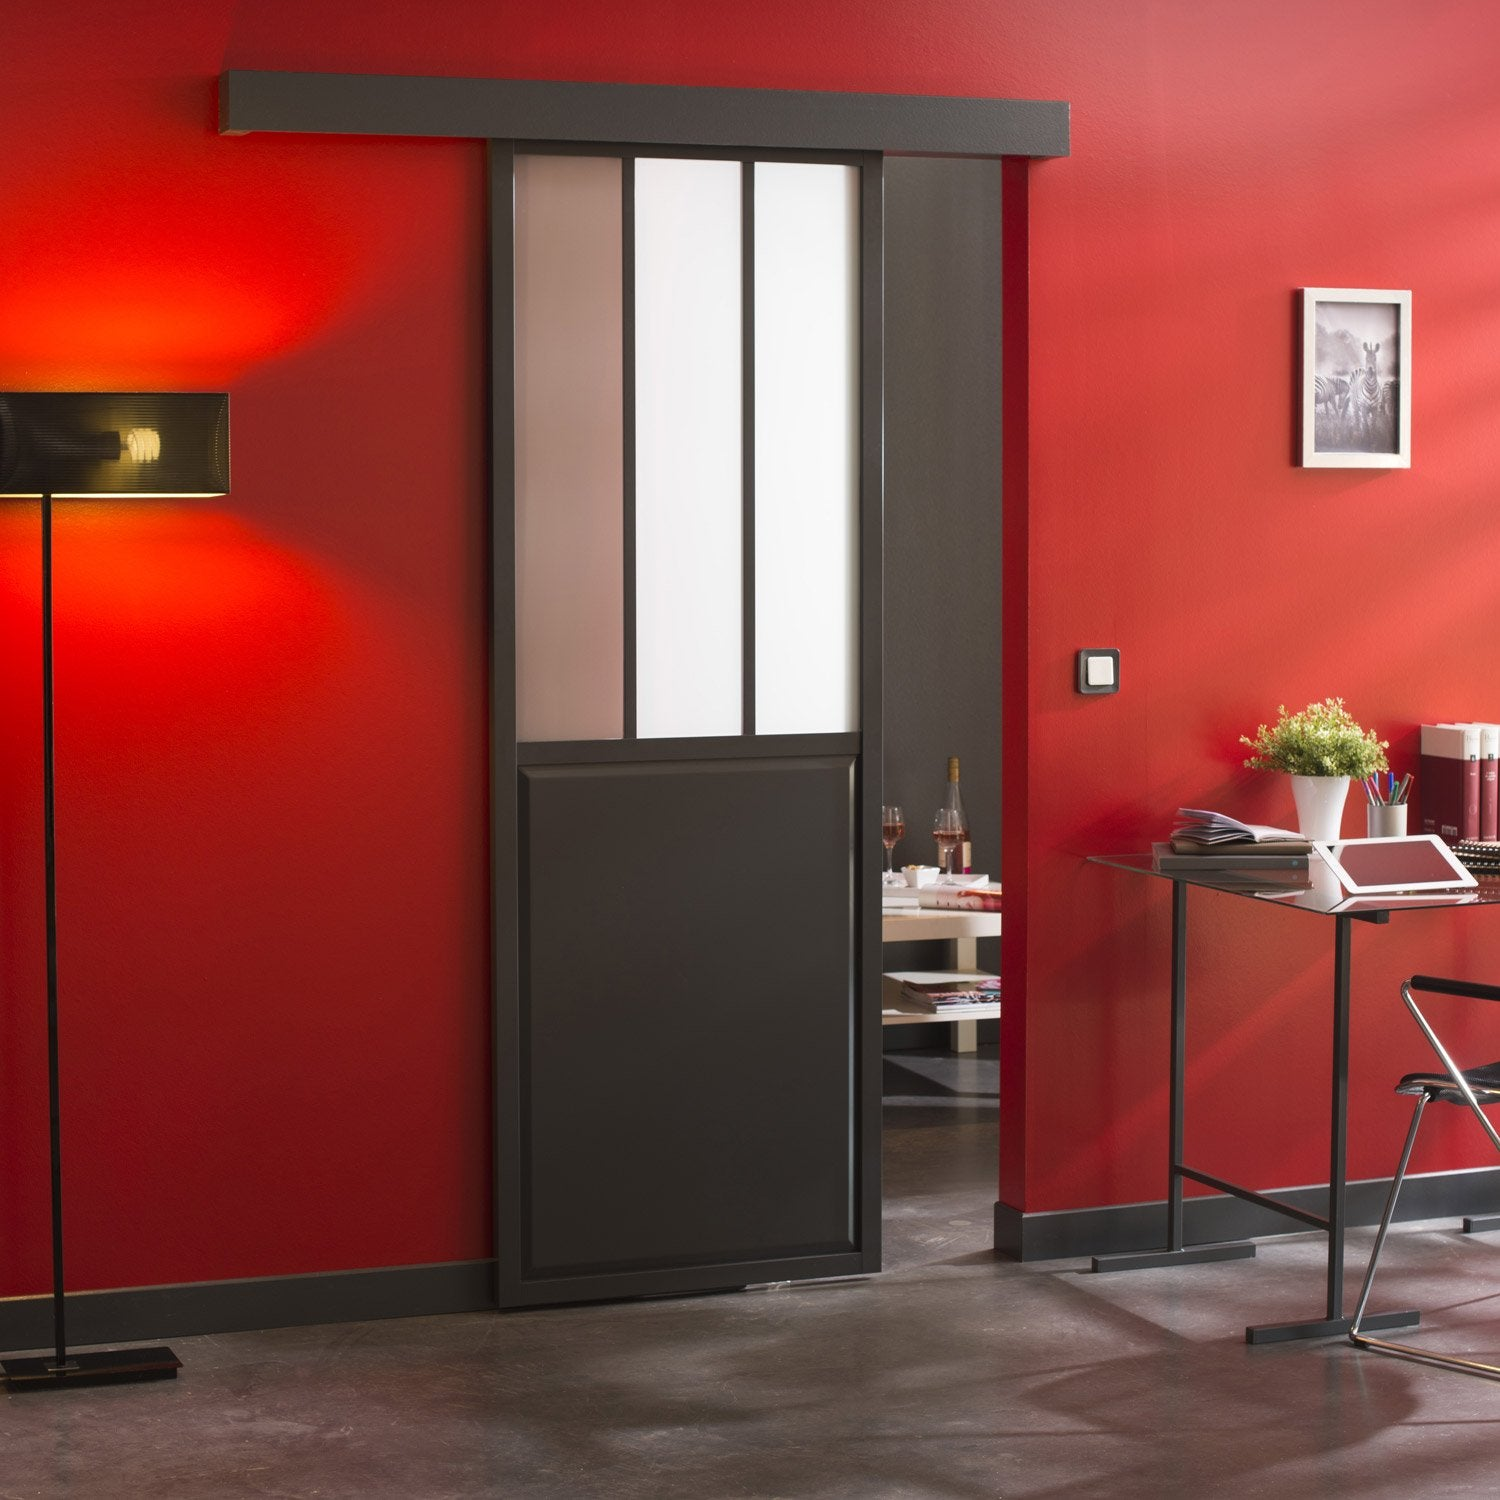 Ensemble porte coulissante atelier verre clair mdf rev tu for Verriere interieure leroy merlin